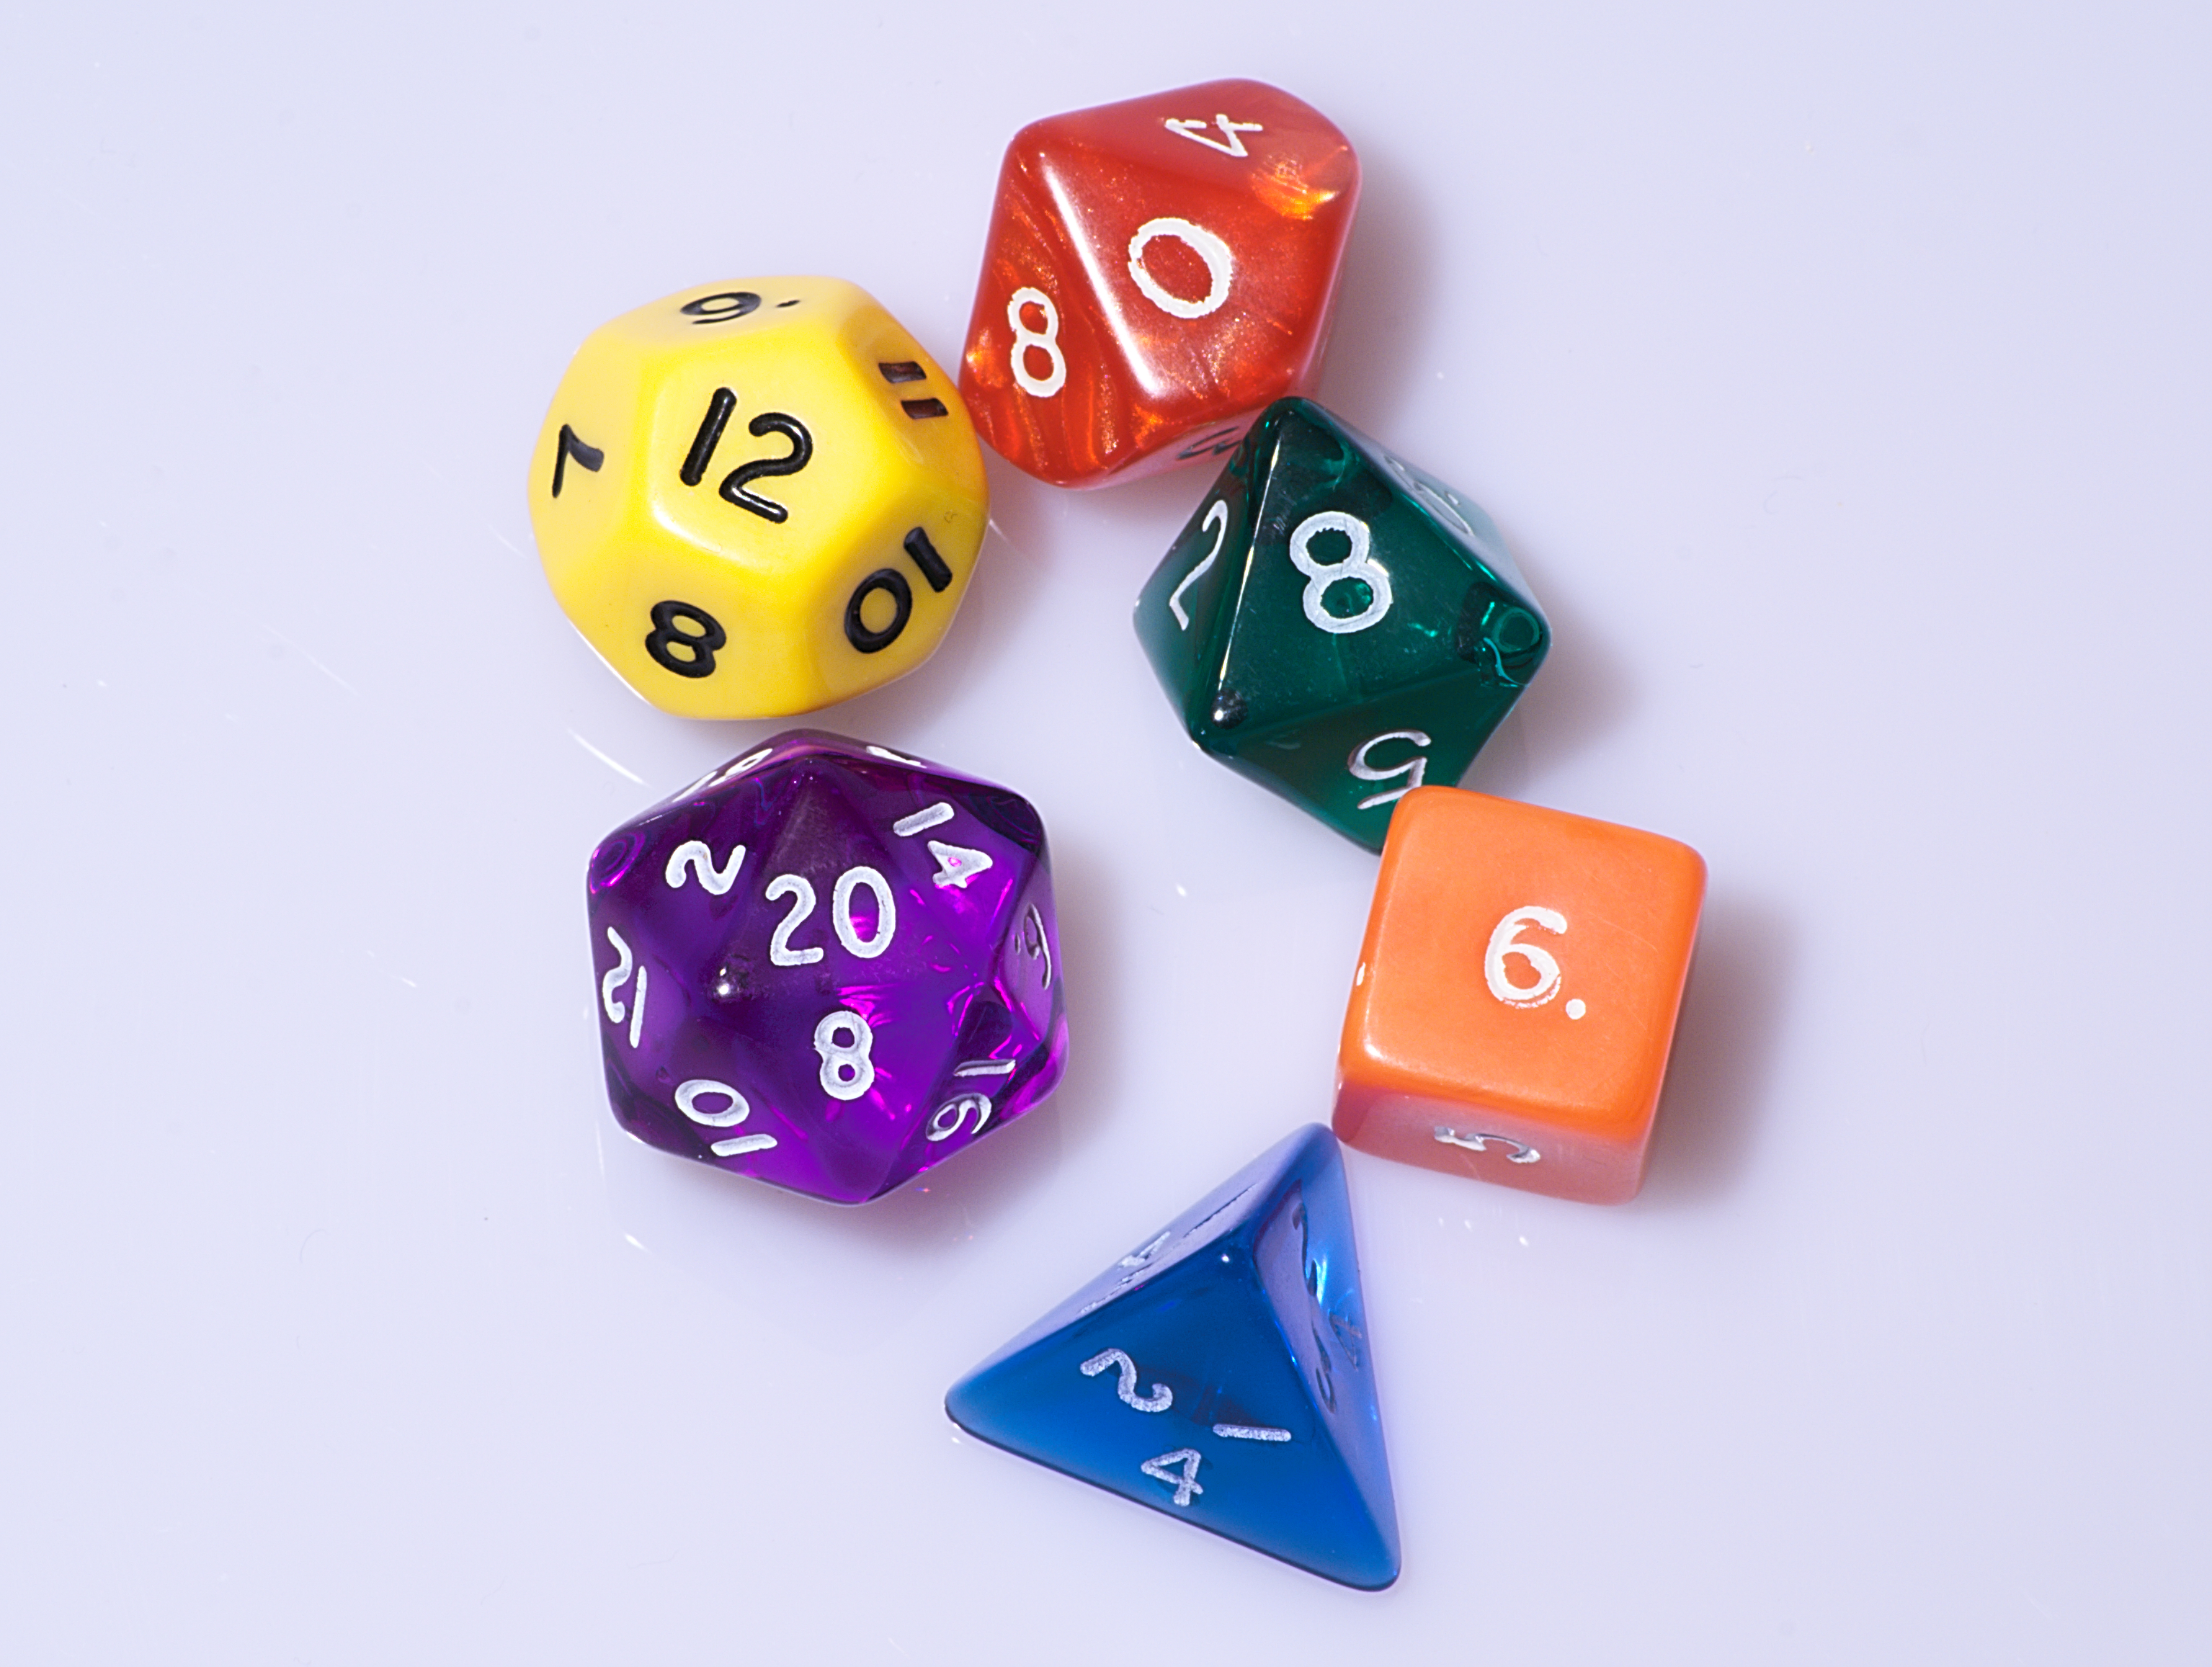 File:Dice (typical role playing game dice).jpg - Wikimedia Commons